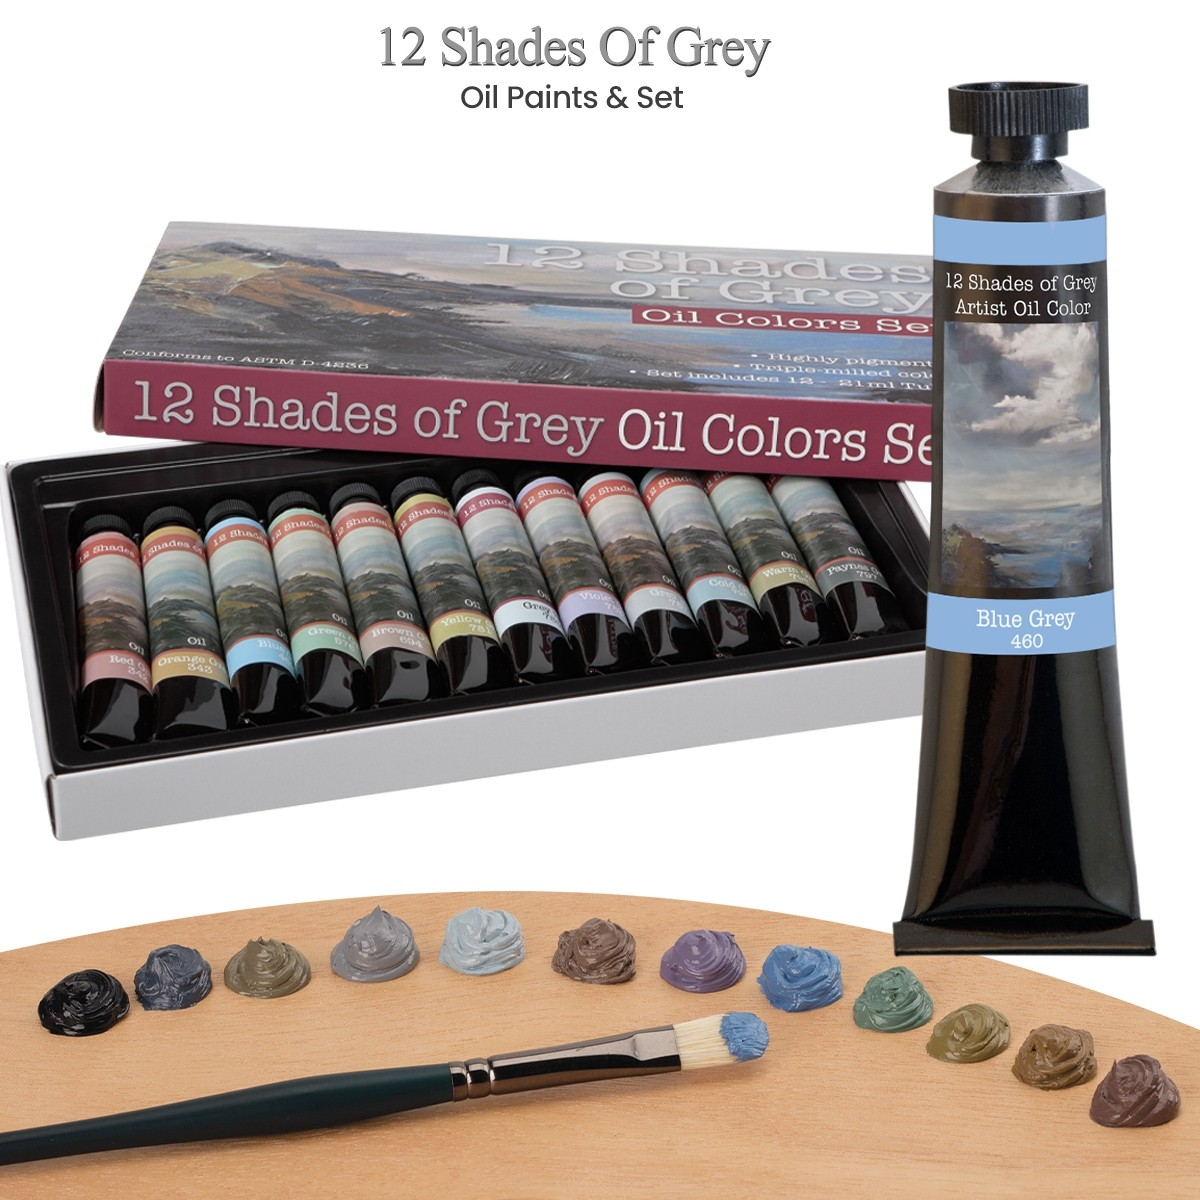 12 Shades of Grey Oil Paints